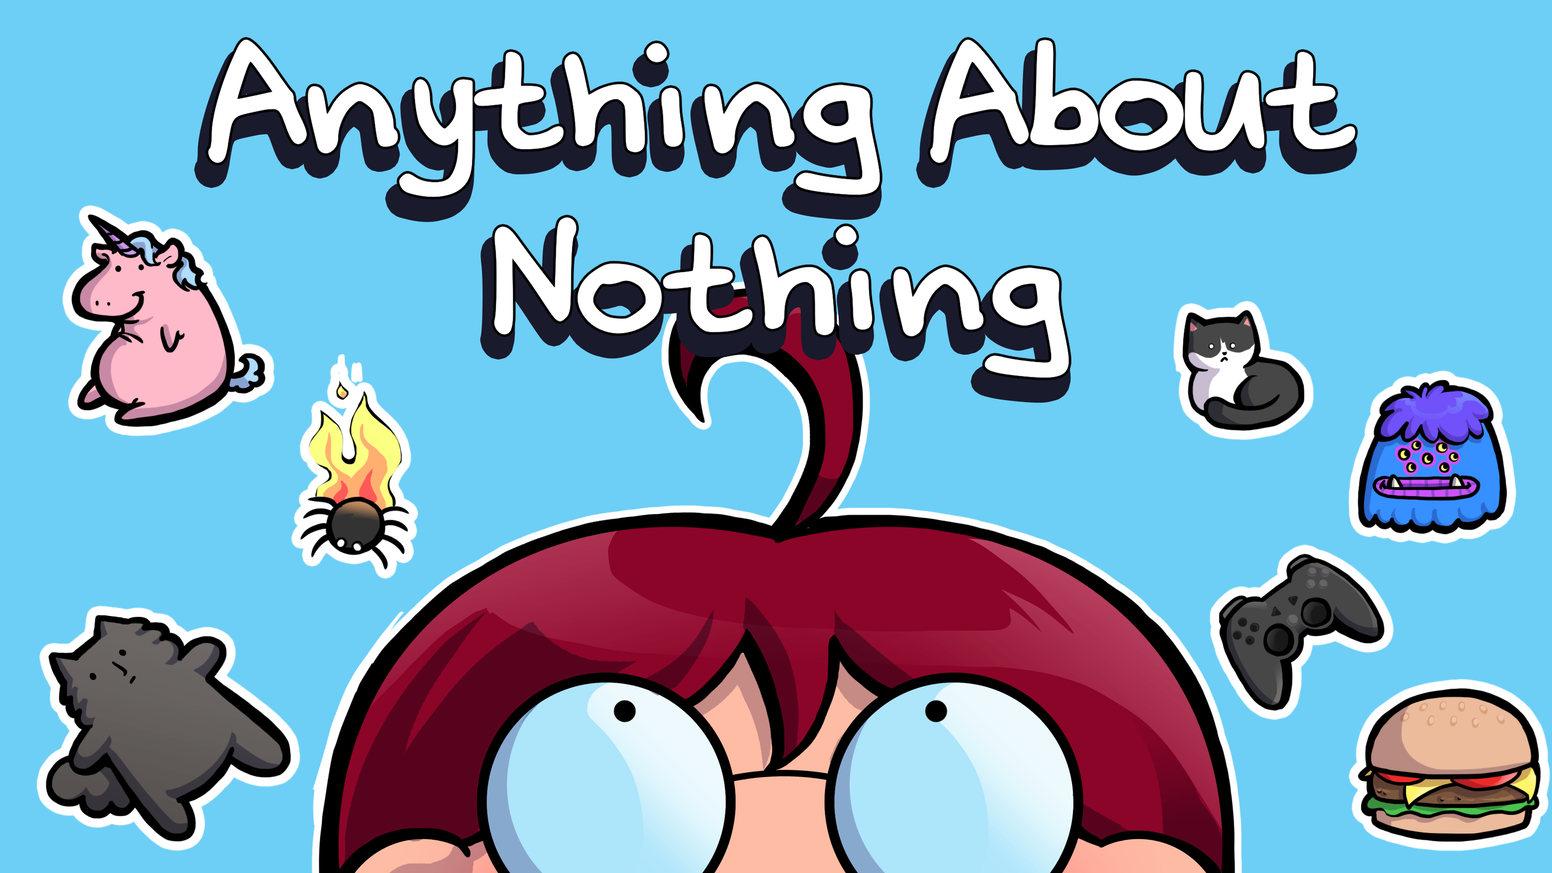 A 250+ page printed collection of old, new and unseen comics from Anything About Nothing.